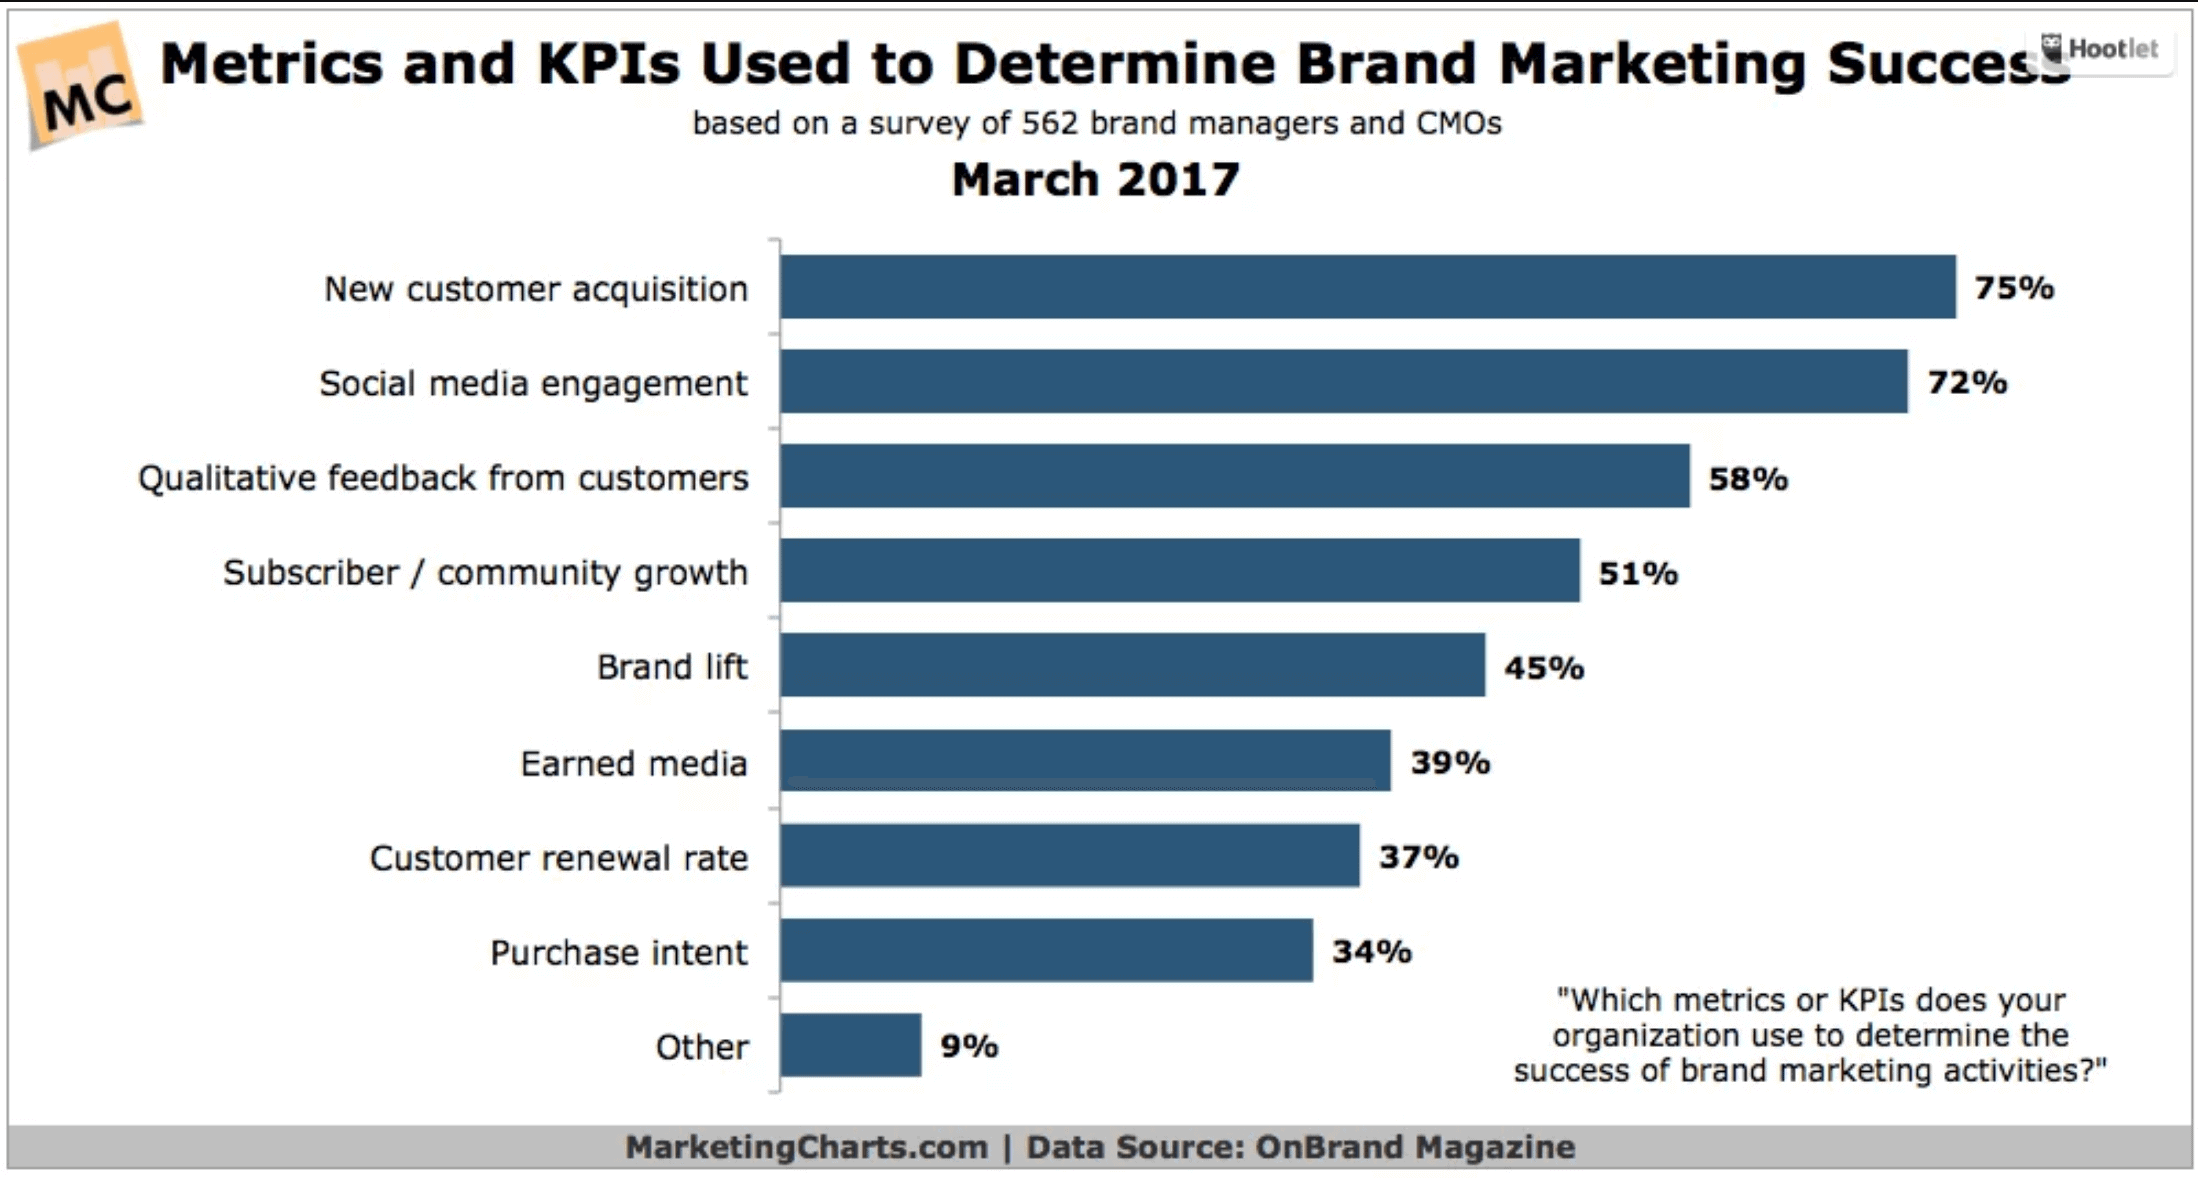 KPIs used by marketing